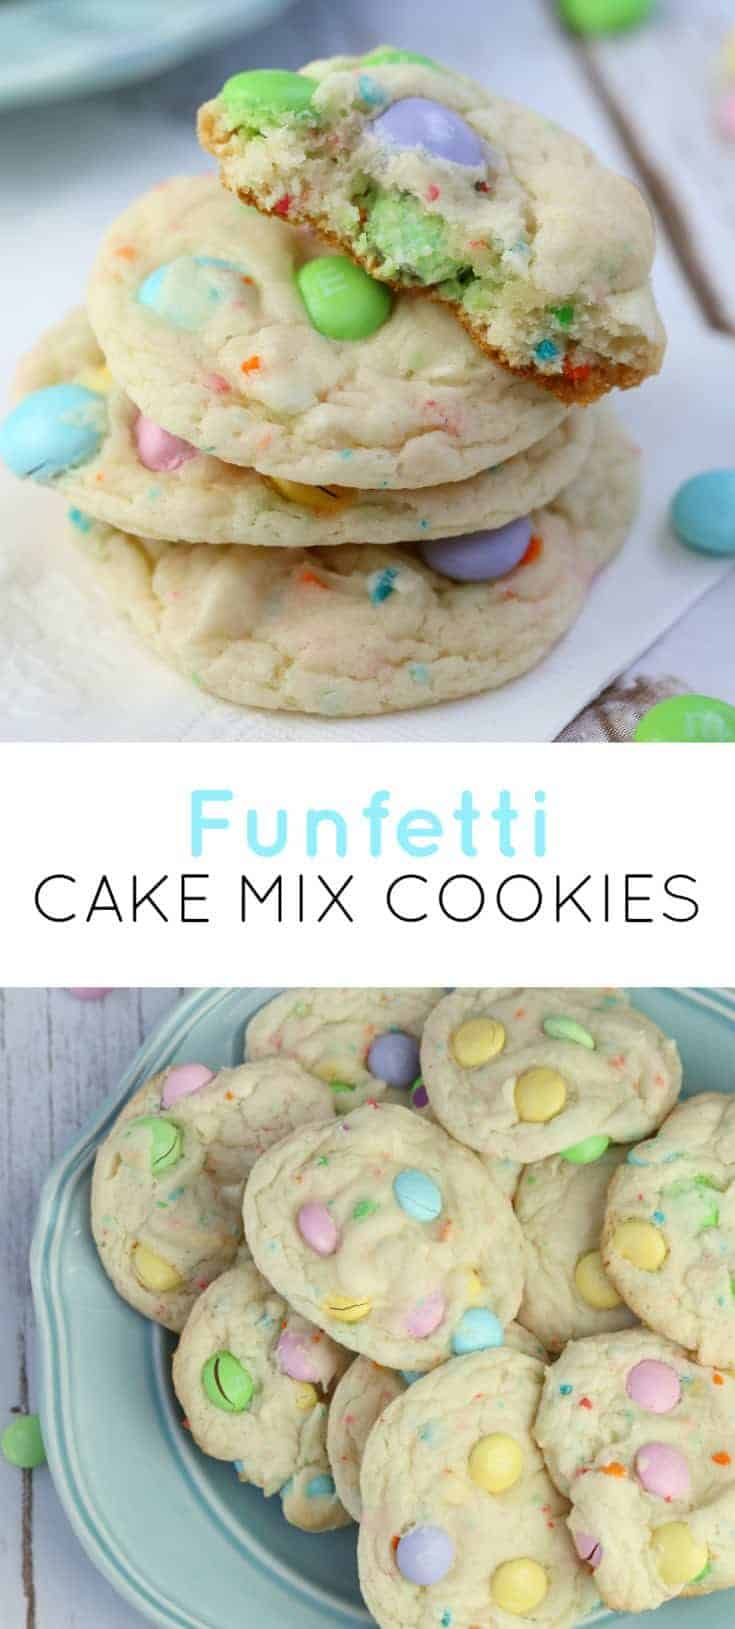 Funfetti Cake Mix Cookies is one of my favourites, I just love the spring 'Eastery' look and the moist cake-like taste. This is one amazing cookie, guys! #cakemixcookies #cookies #cookierecipe #funfetti